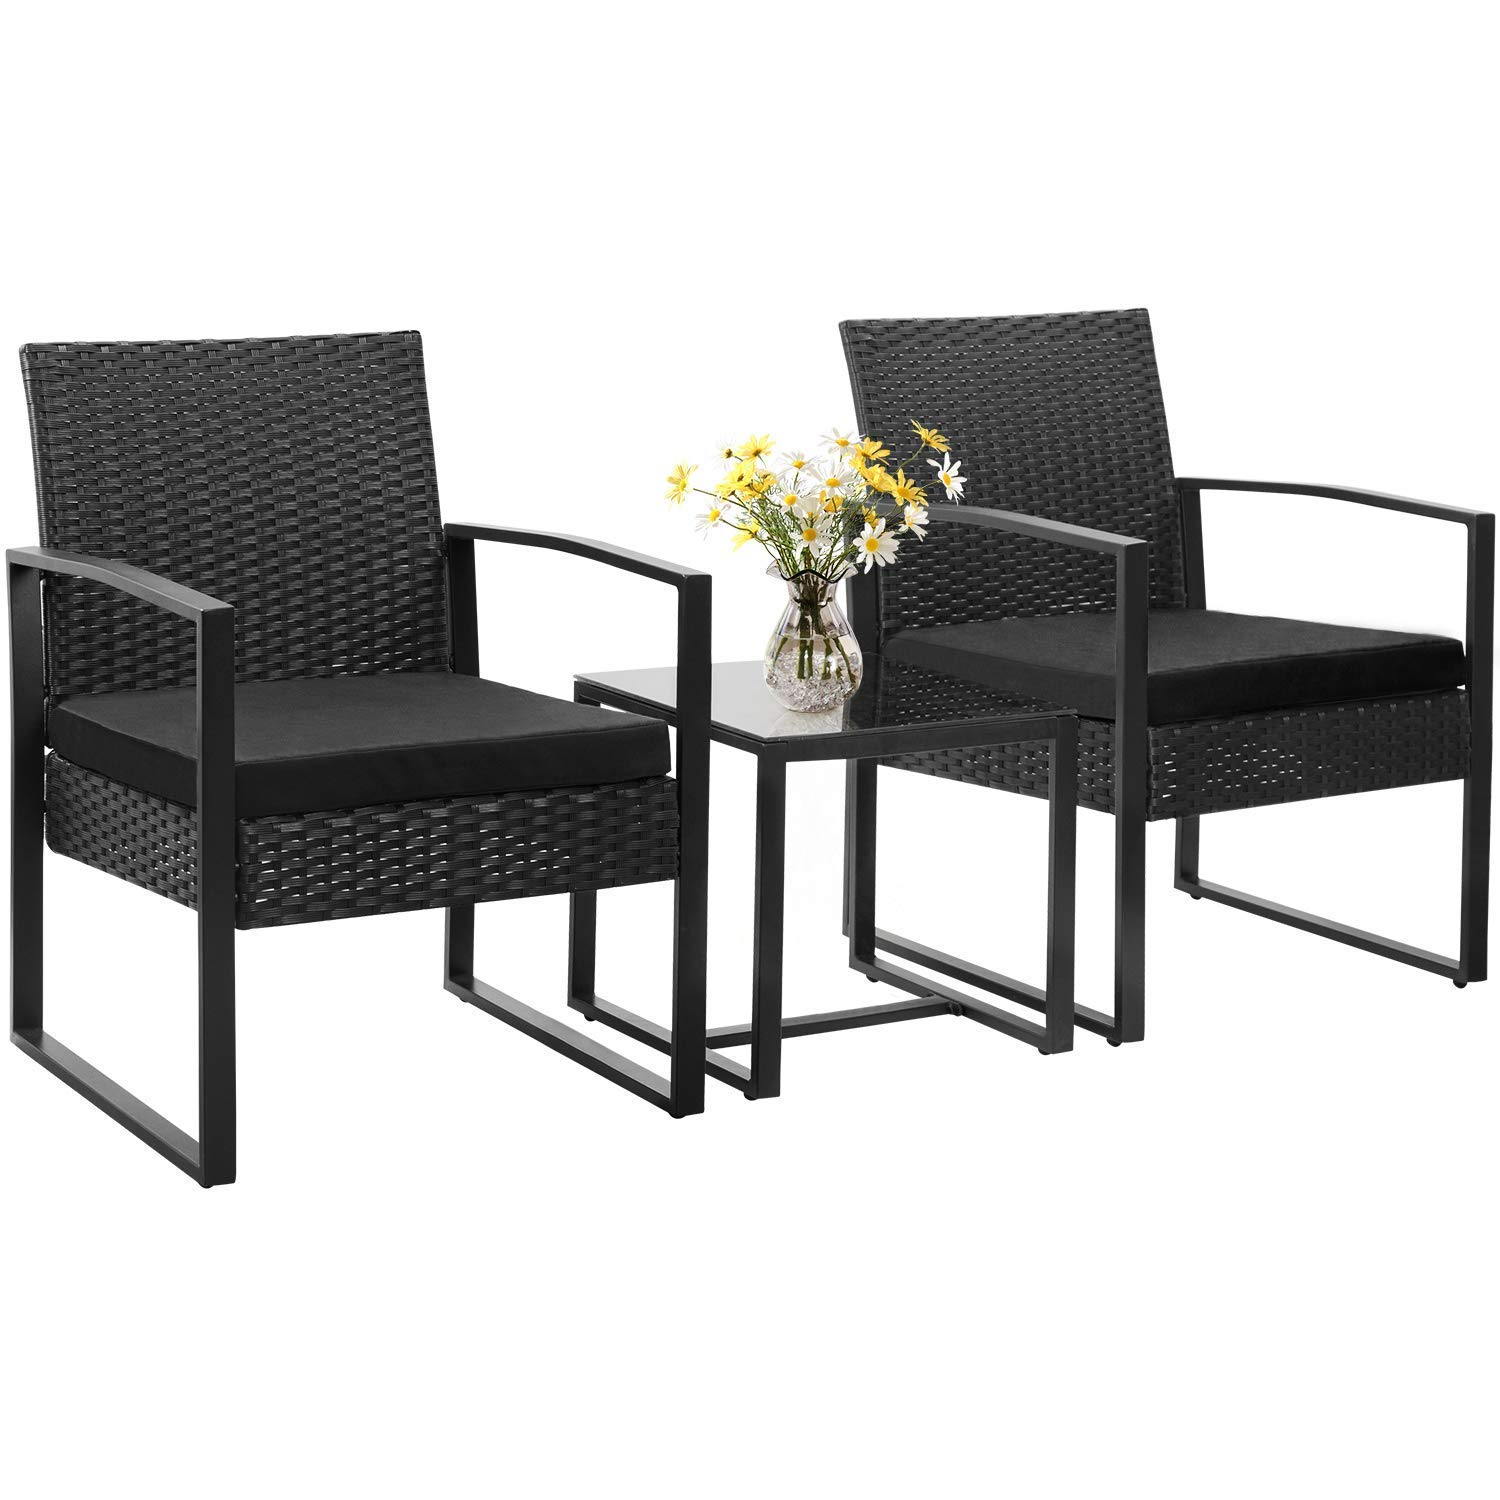 Homall Balcony Furniture Patio Chairs Set of 2 with Table 3 Piece Patio  Furniture Set Bistro Table Set for Garden Backyard Outdoor Patio Use Porch  Chairs ... - Amazon.com: Homall Balcony Furniture Patio Chairs Set Of 2 With